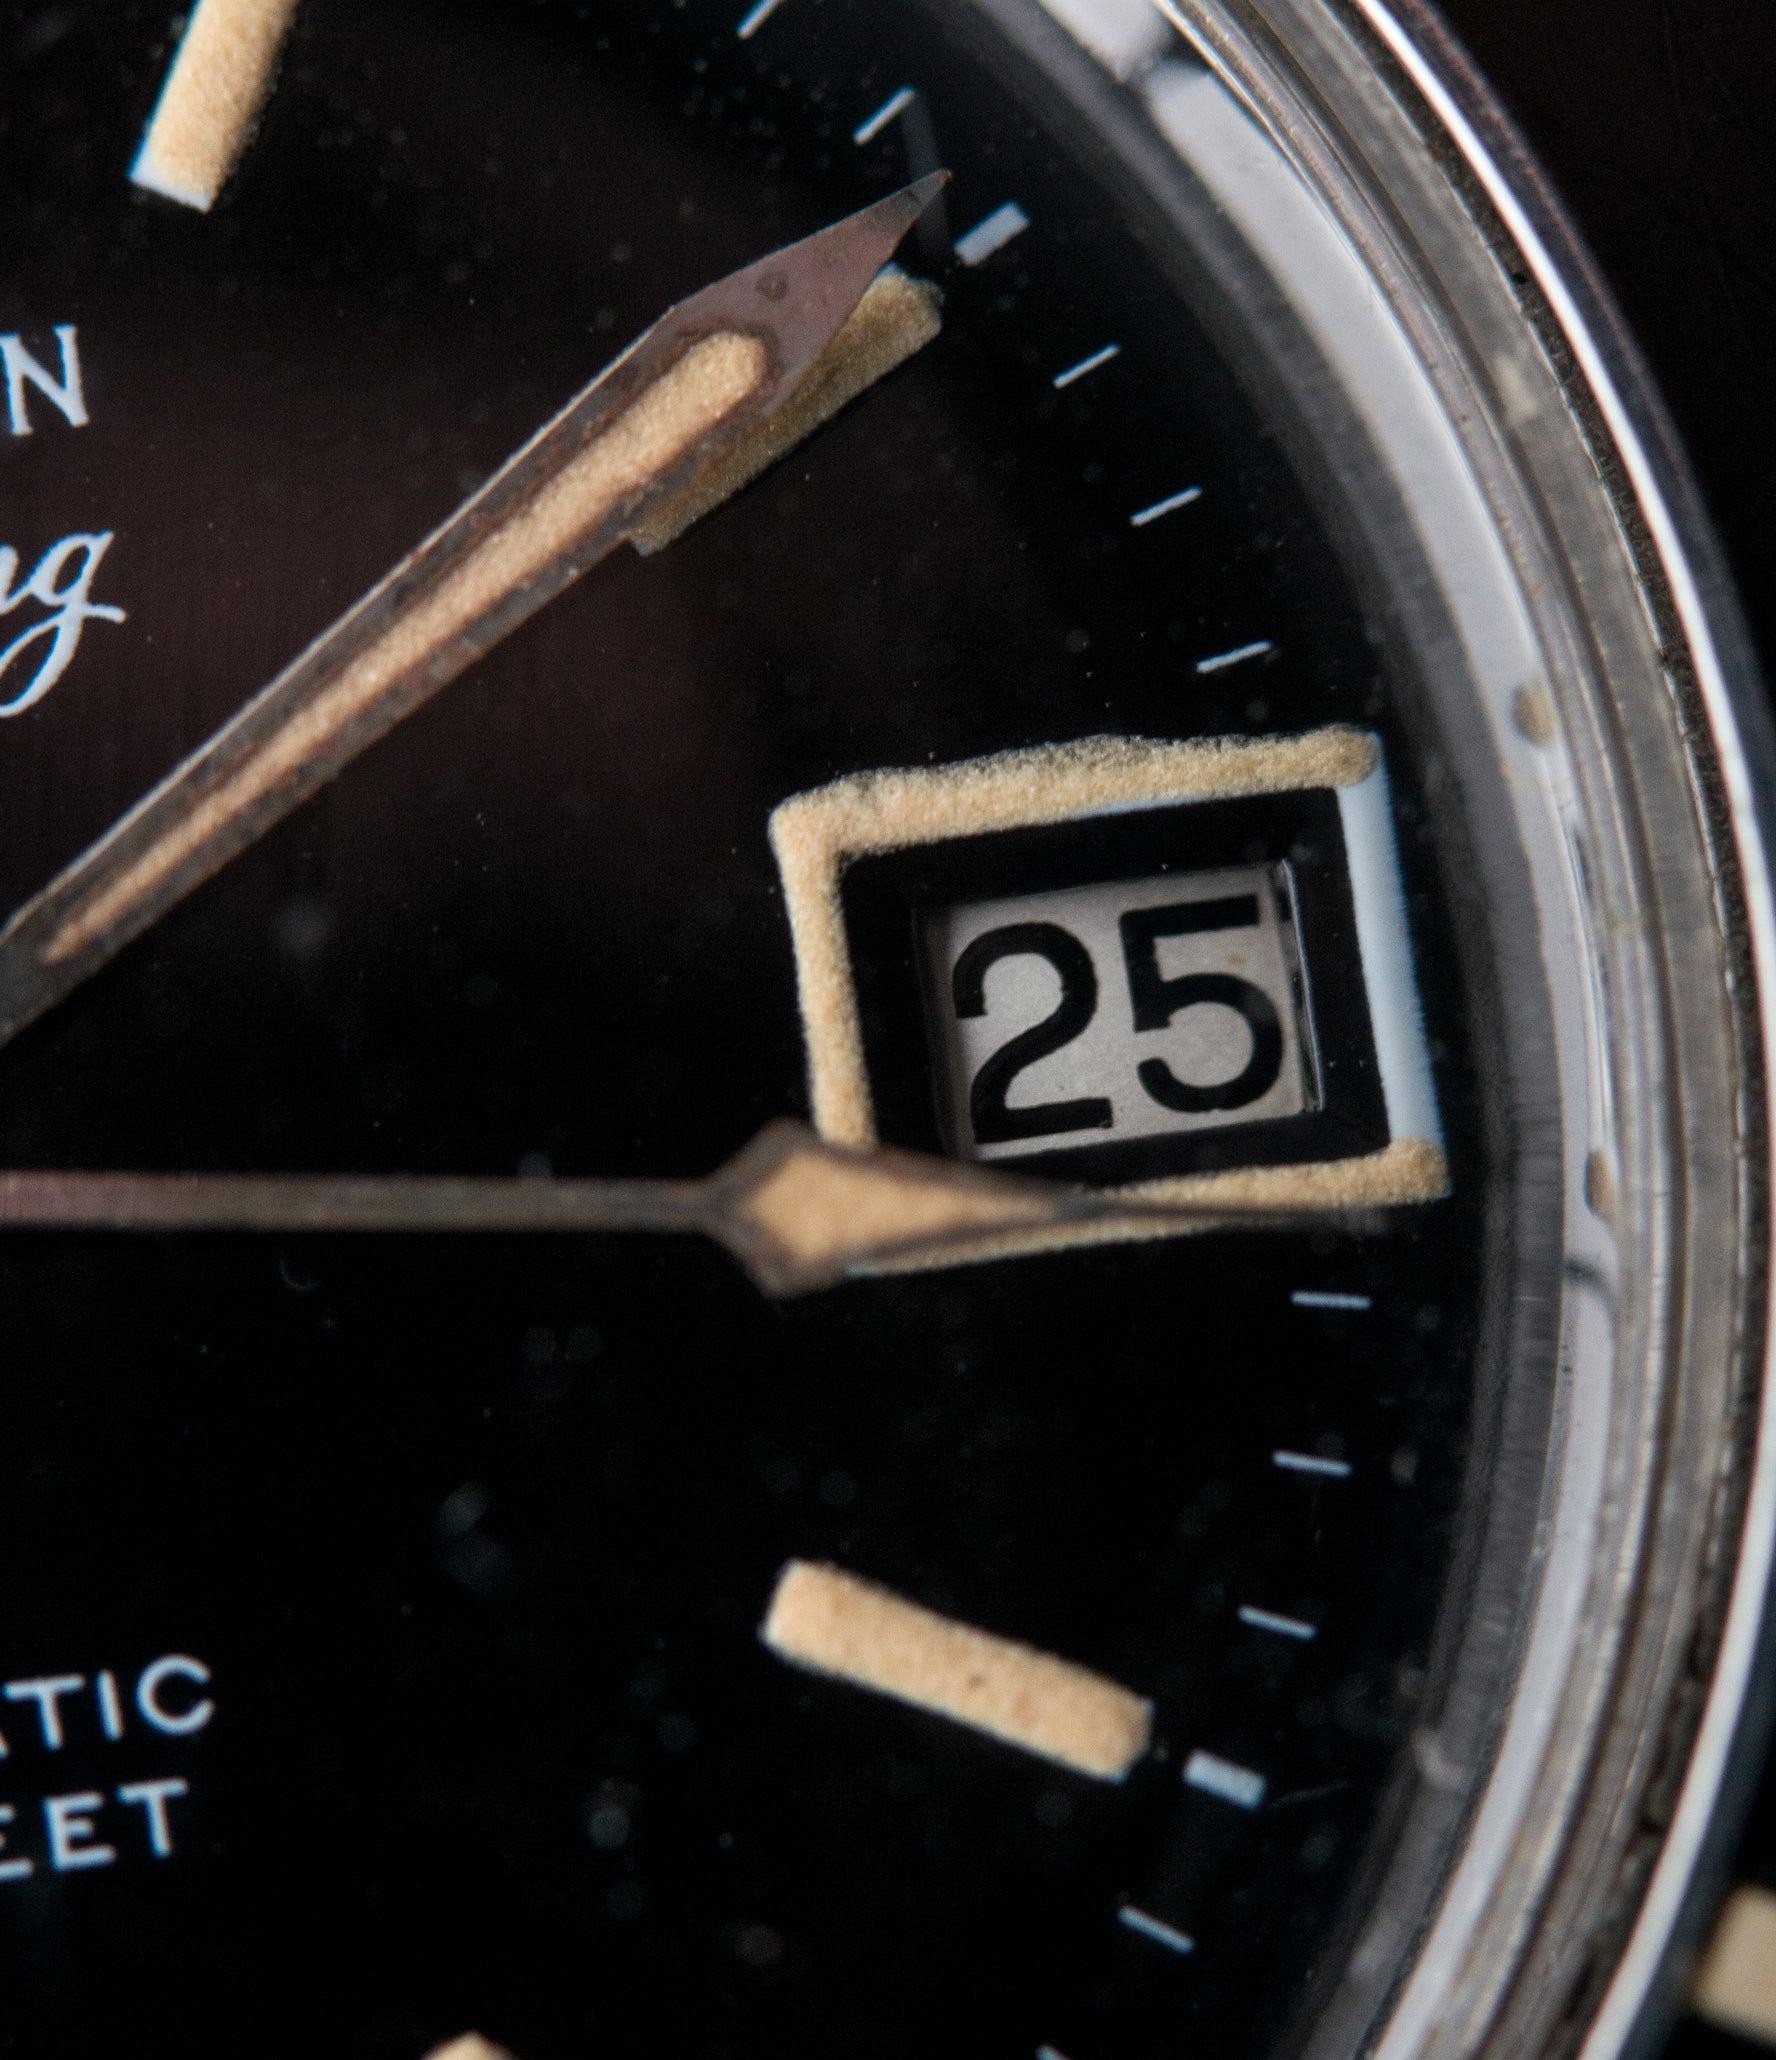 original Blancpain Aqua Lung Gloss Dial Cal. AS 1700/01 vintage sport watch black dial for sale online at A Collected Man London UK specialist rare, vintage watches